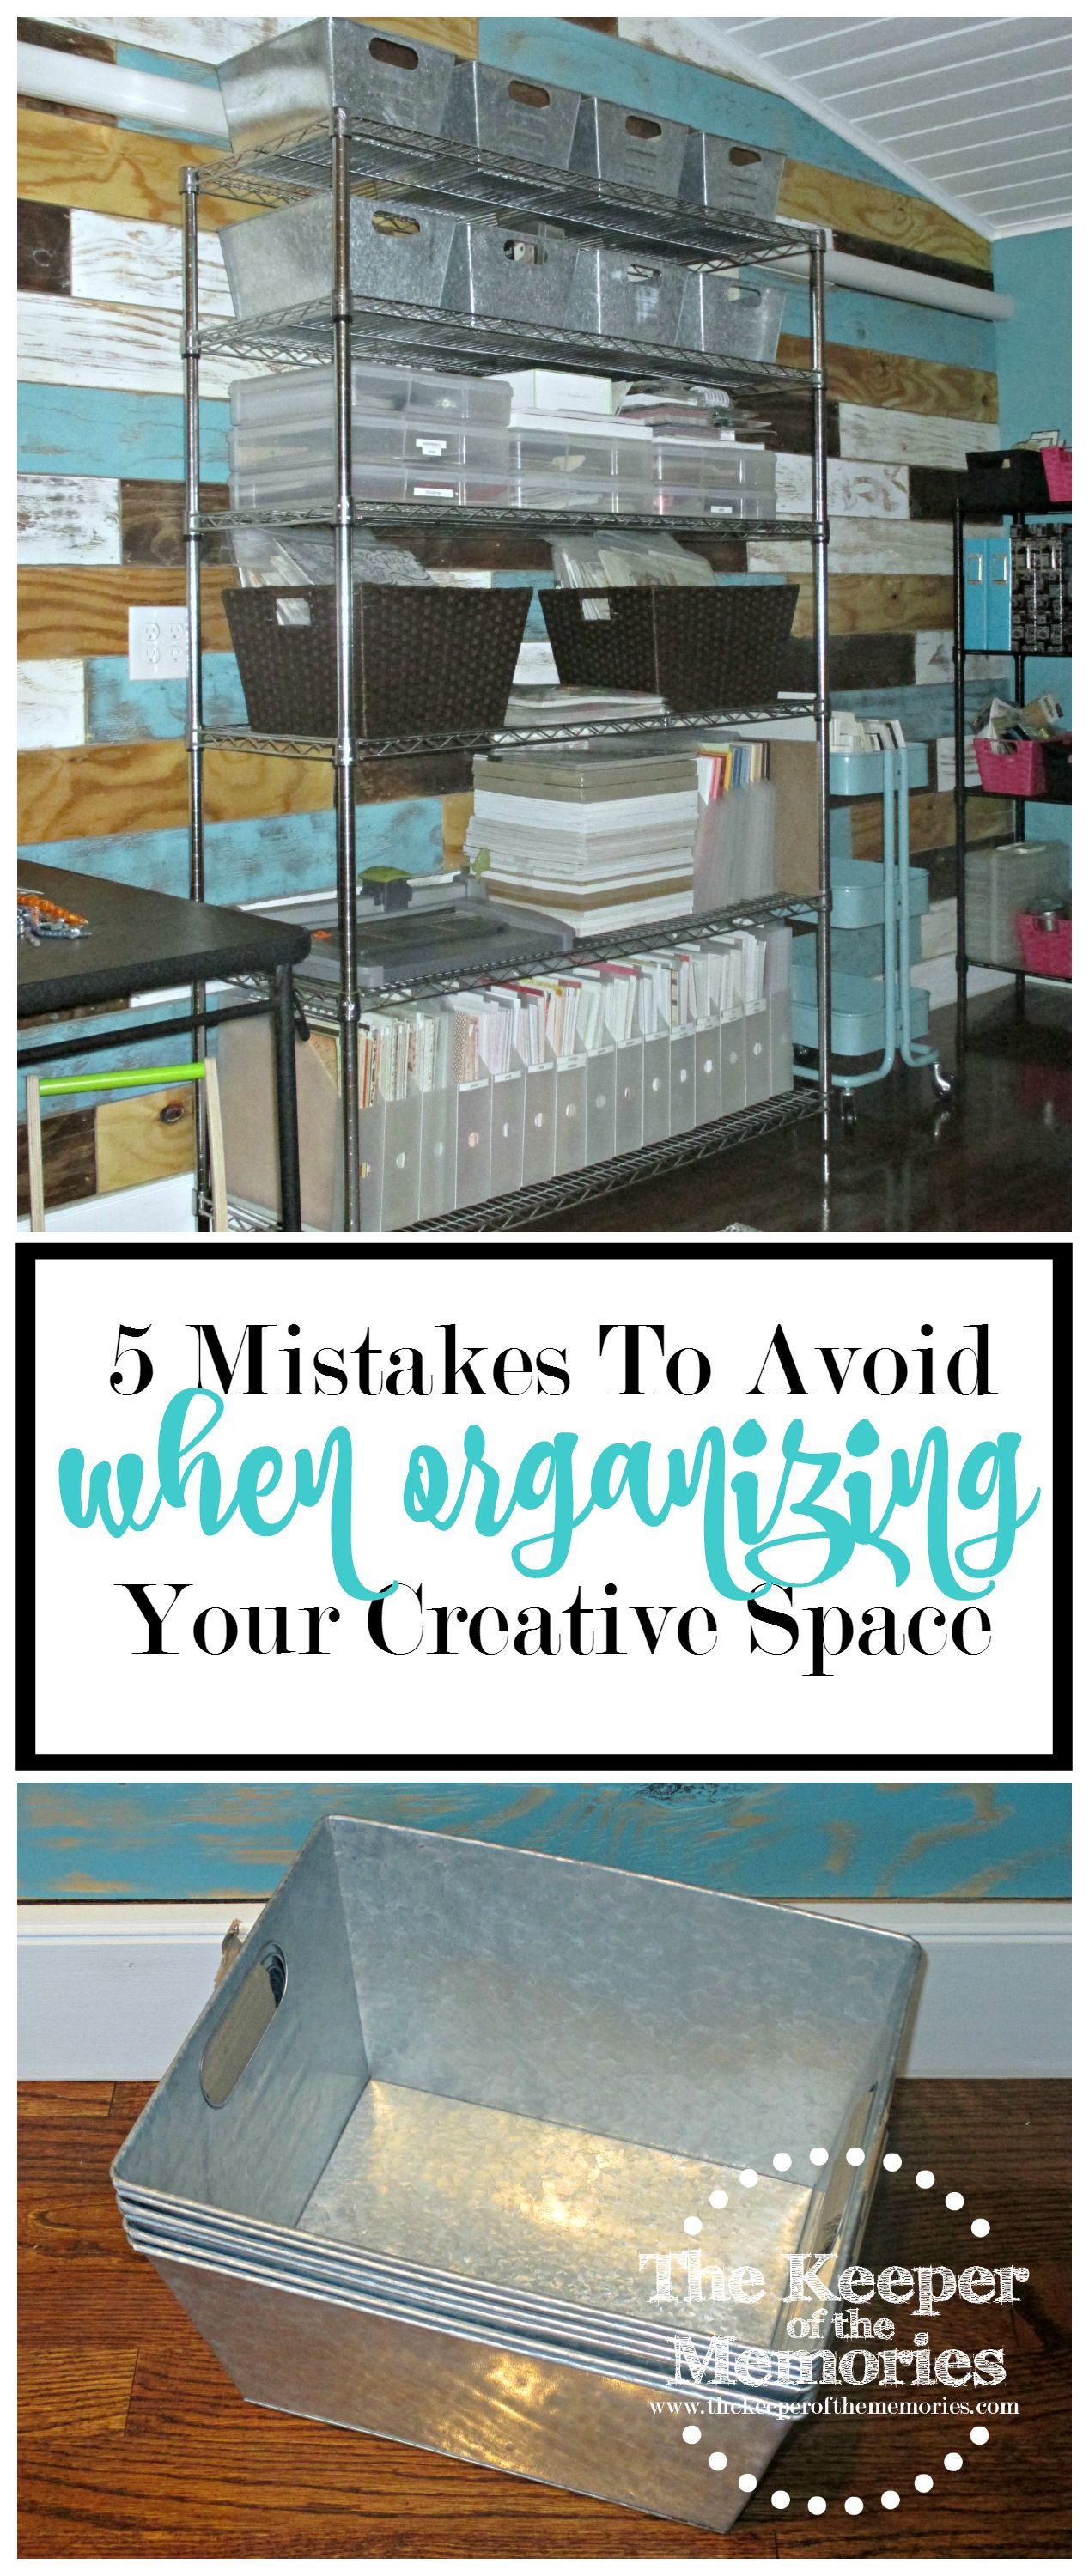 The 5 Biggest Mistakes I Made When Organizing My Creative